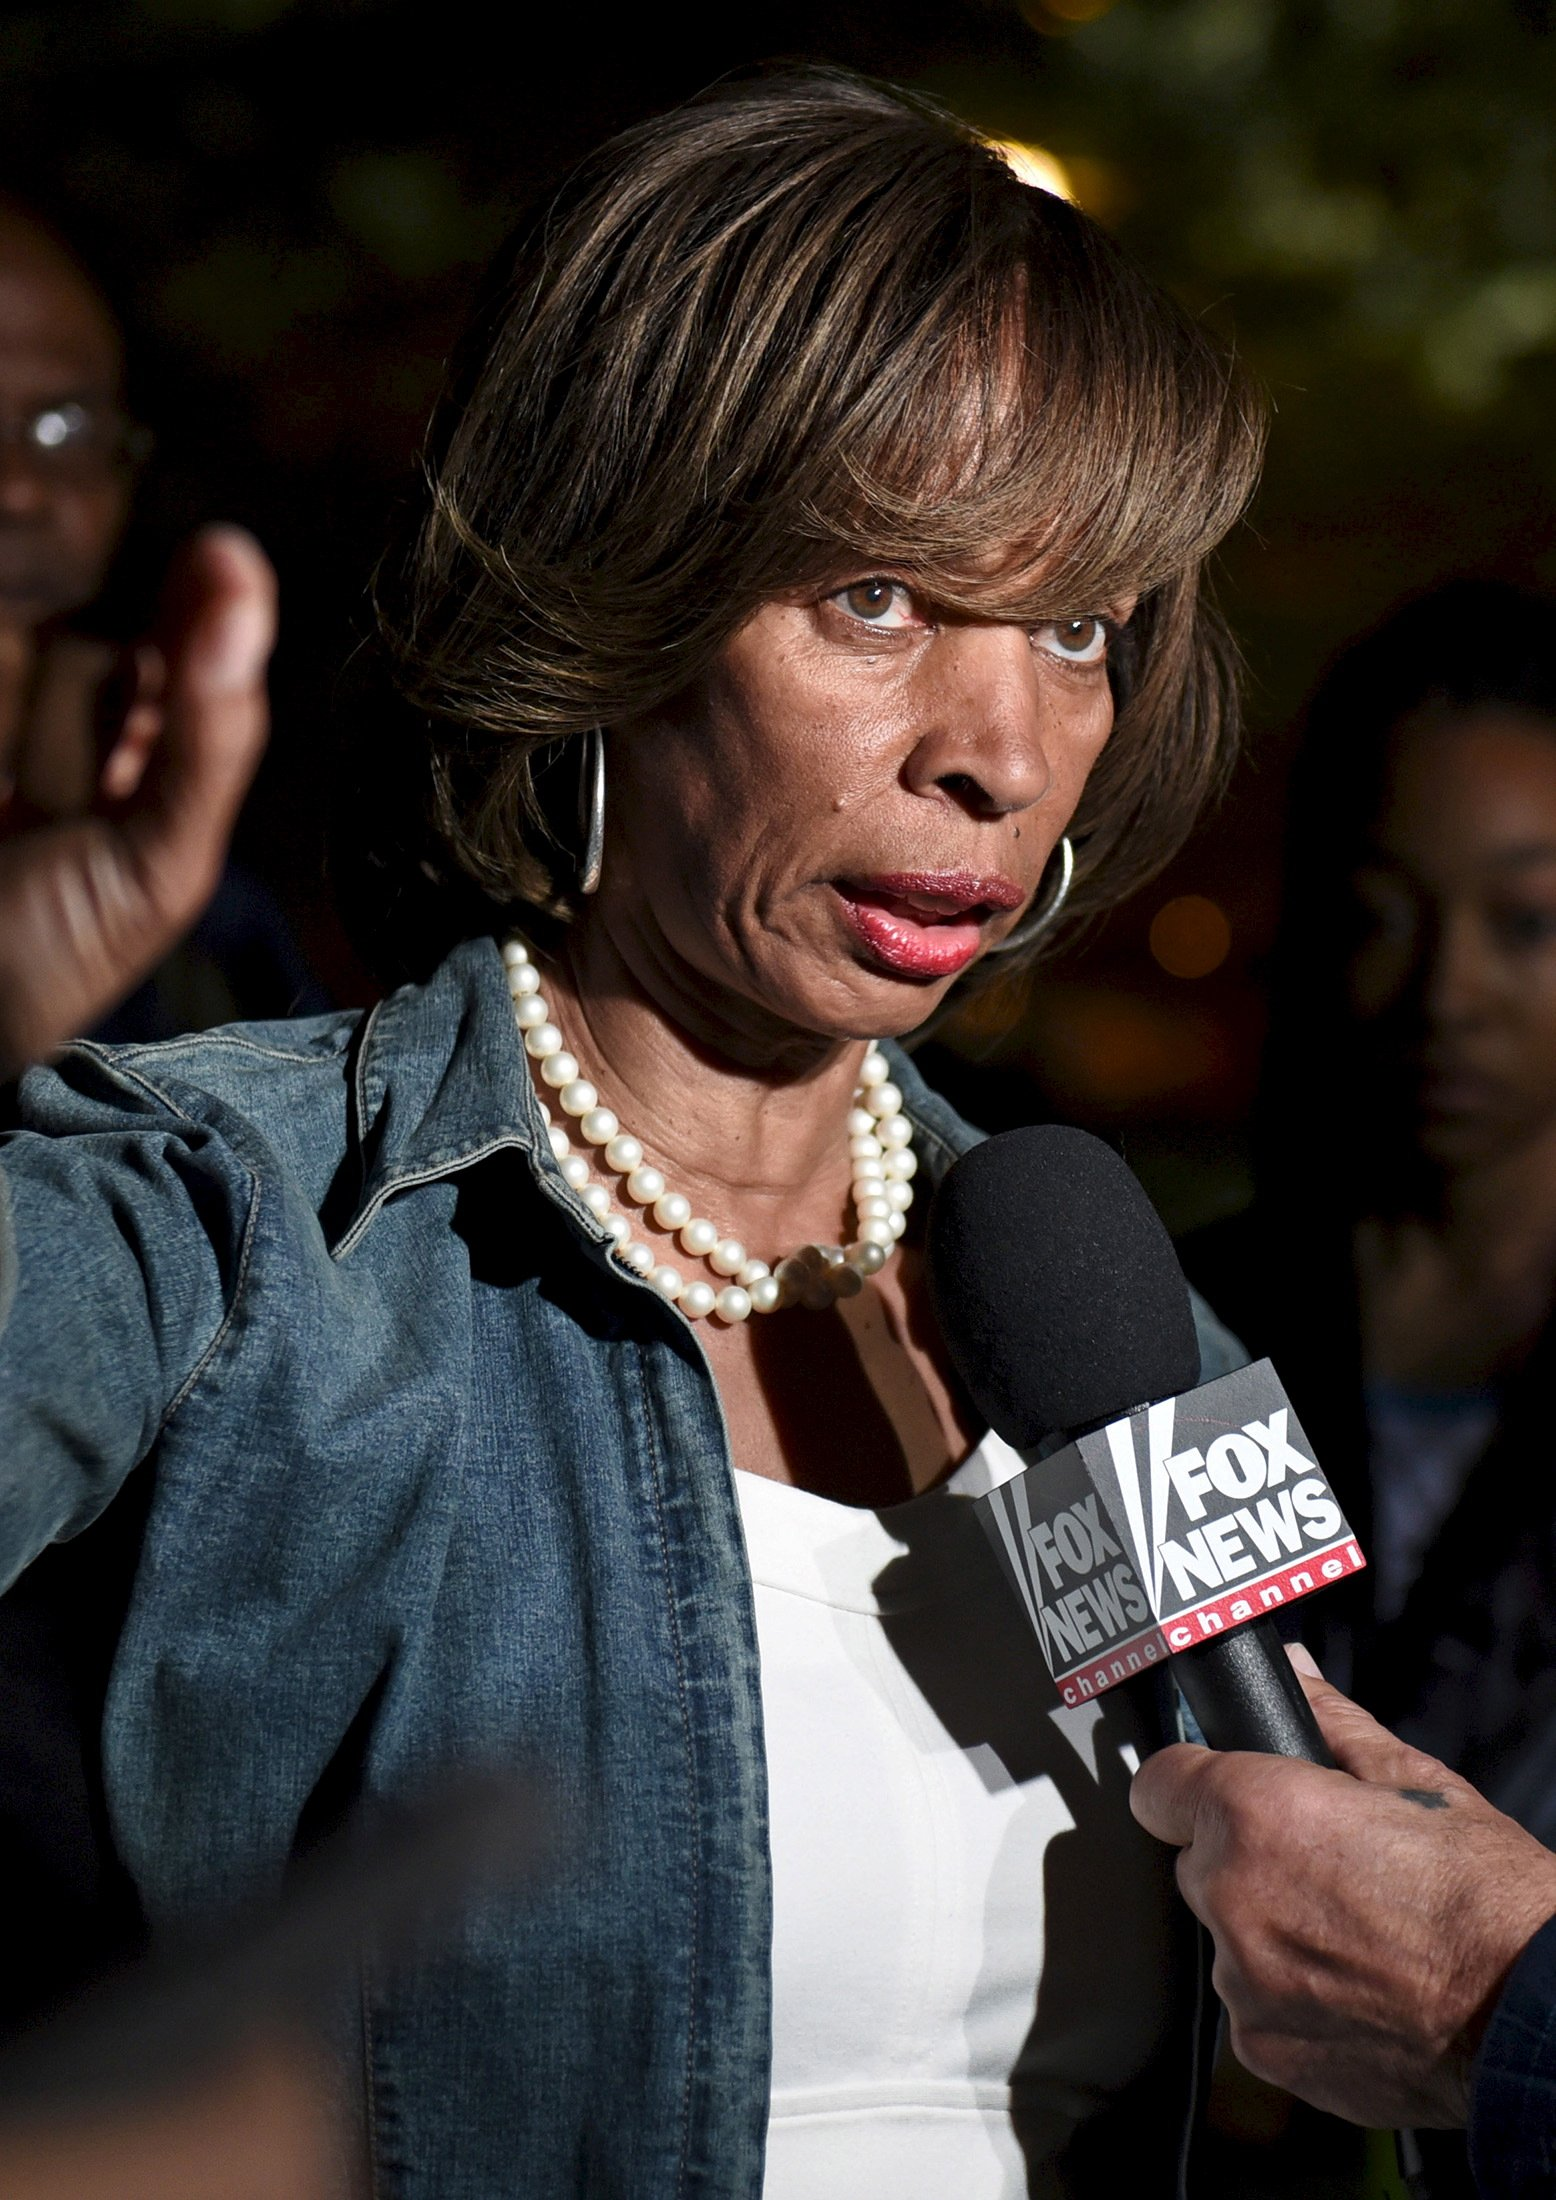 State Senator Catherine Pugh speaks near City Hall in Baltimore May 2, 2015. REUTERS/Sait Serkan Gurbuz/File photo